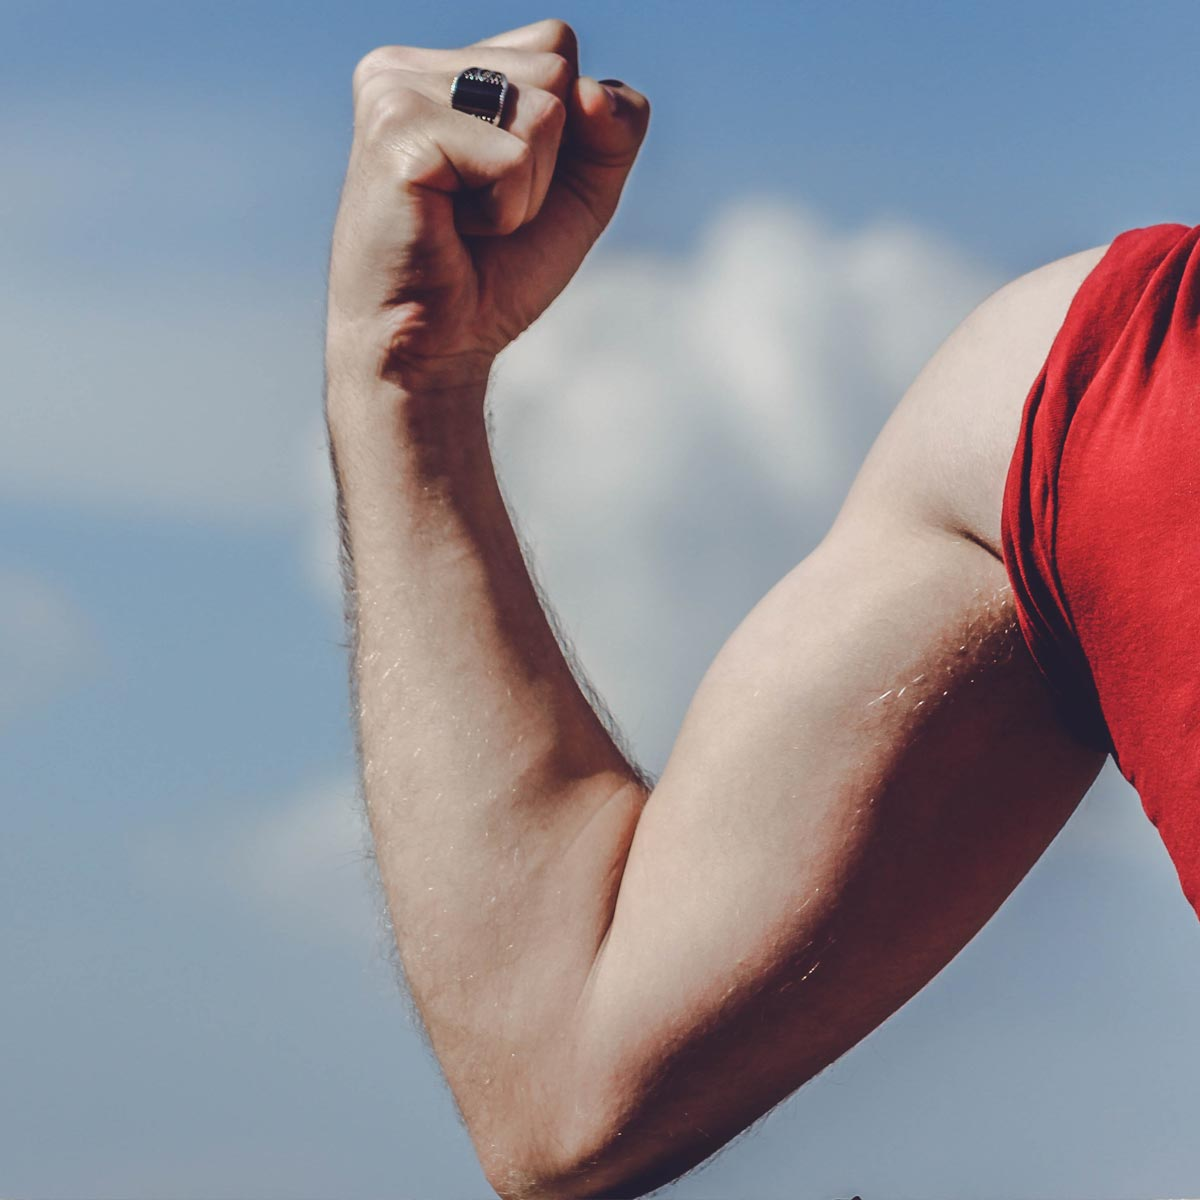 A man in a red t-shirt flexes the muscles on his right arm